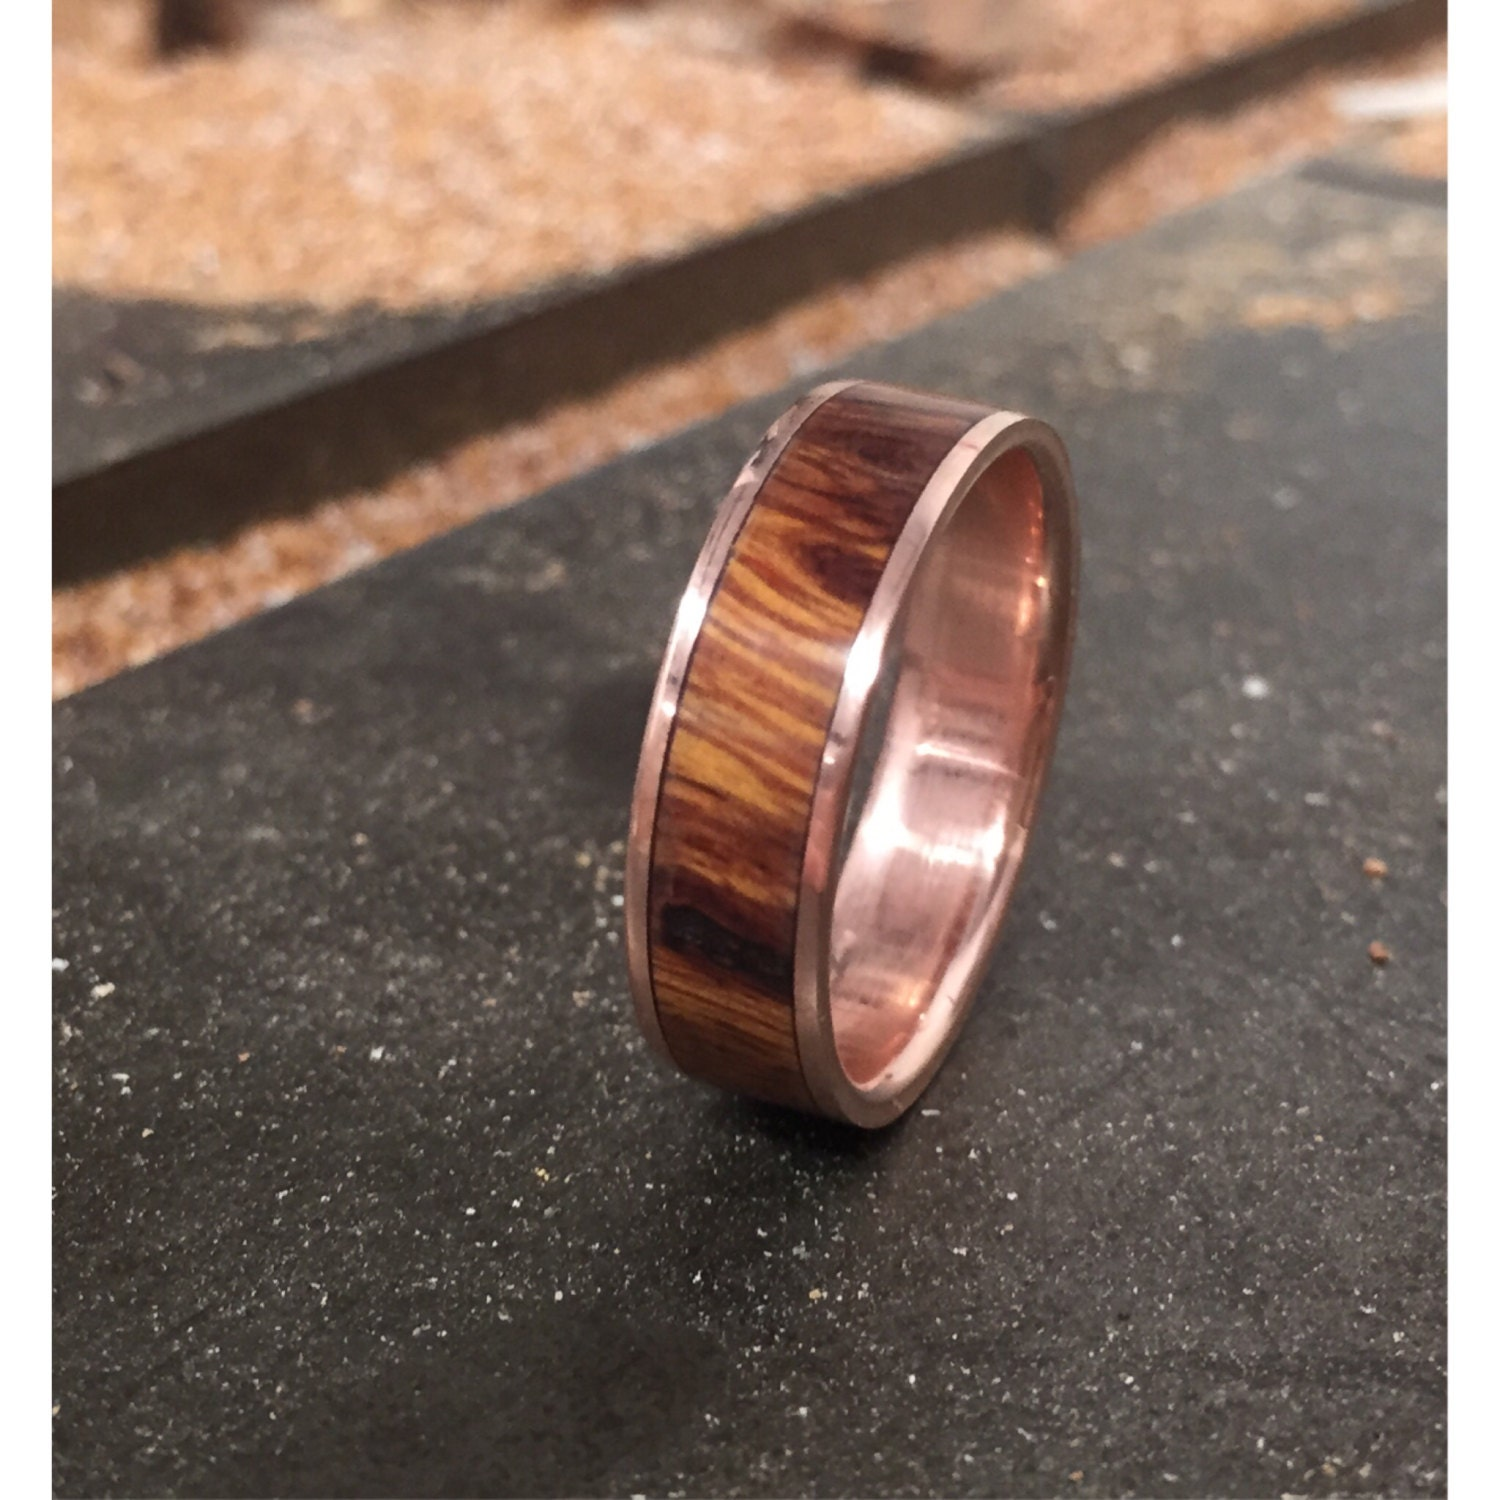 Titanium wedding bands for men with wood inlay